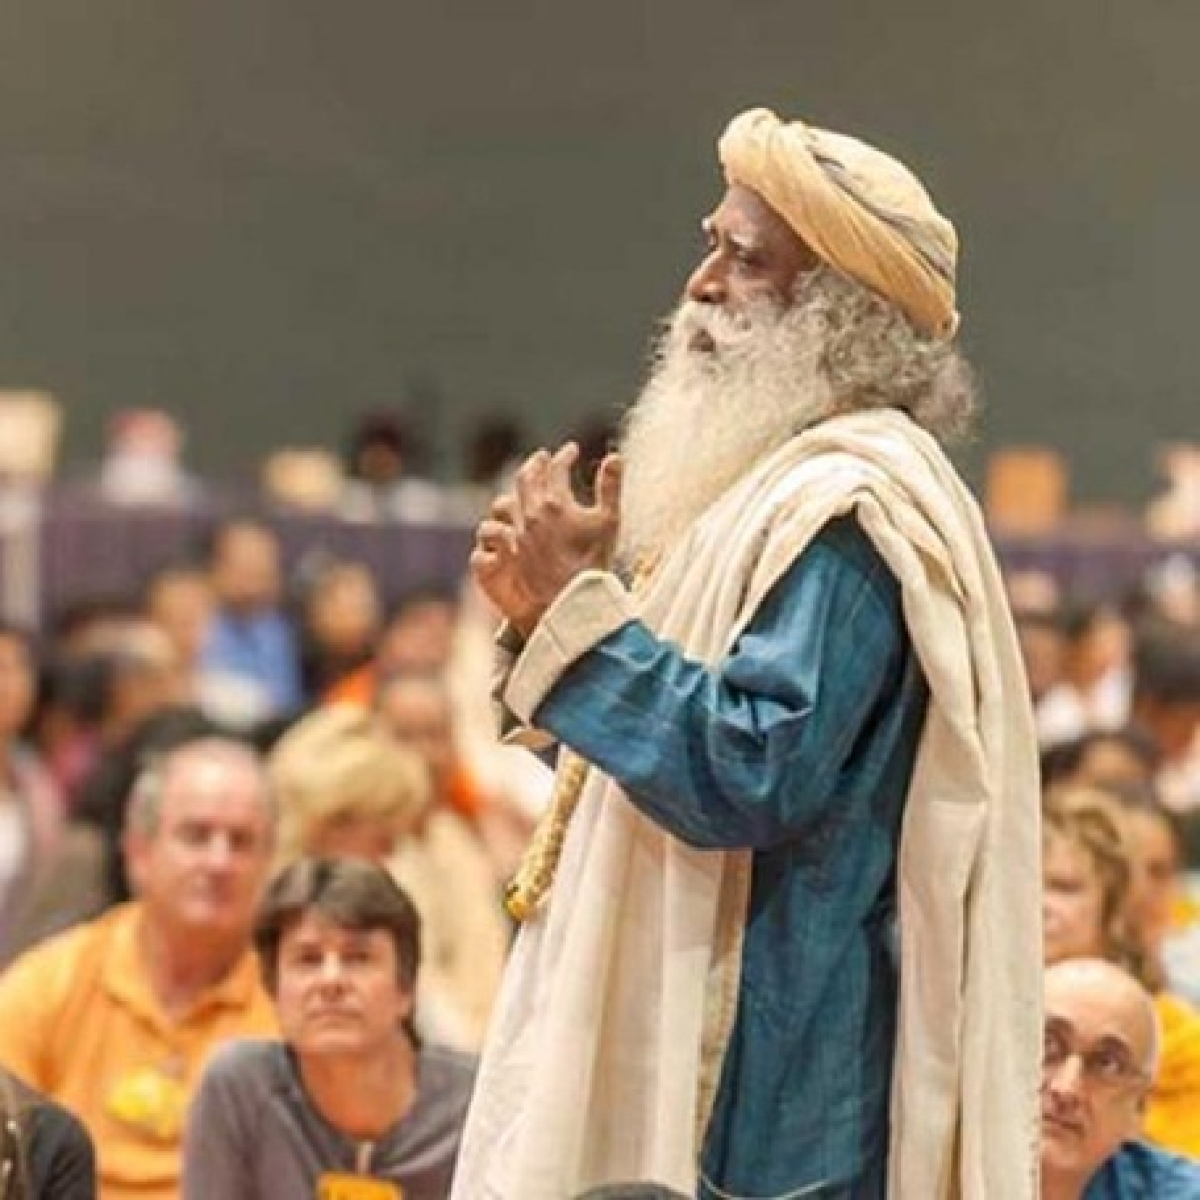 How to watch Maha Shivratri livestream at Sadhguru's Isha Yoga Centre